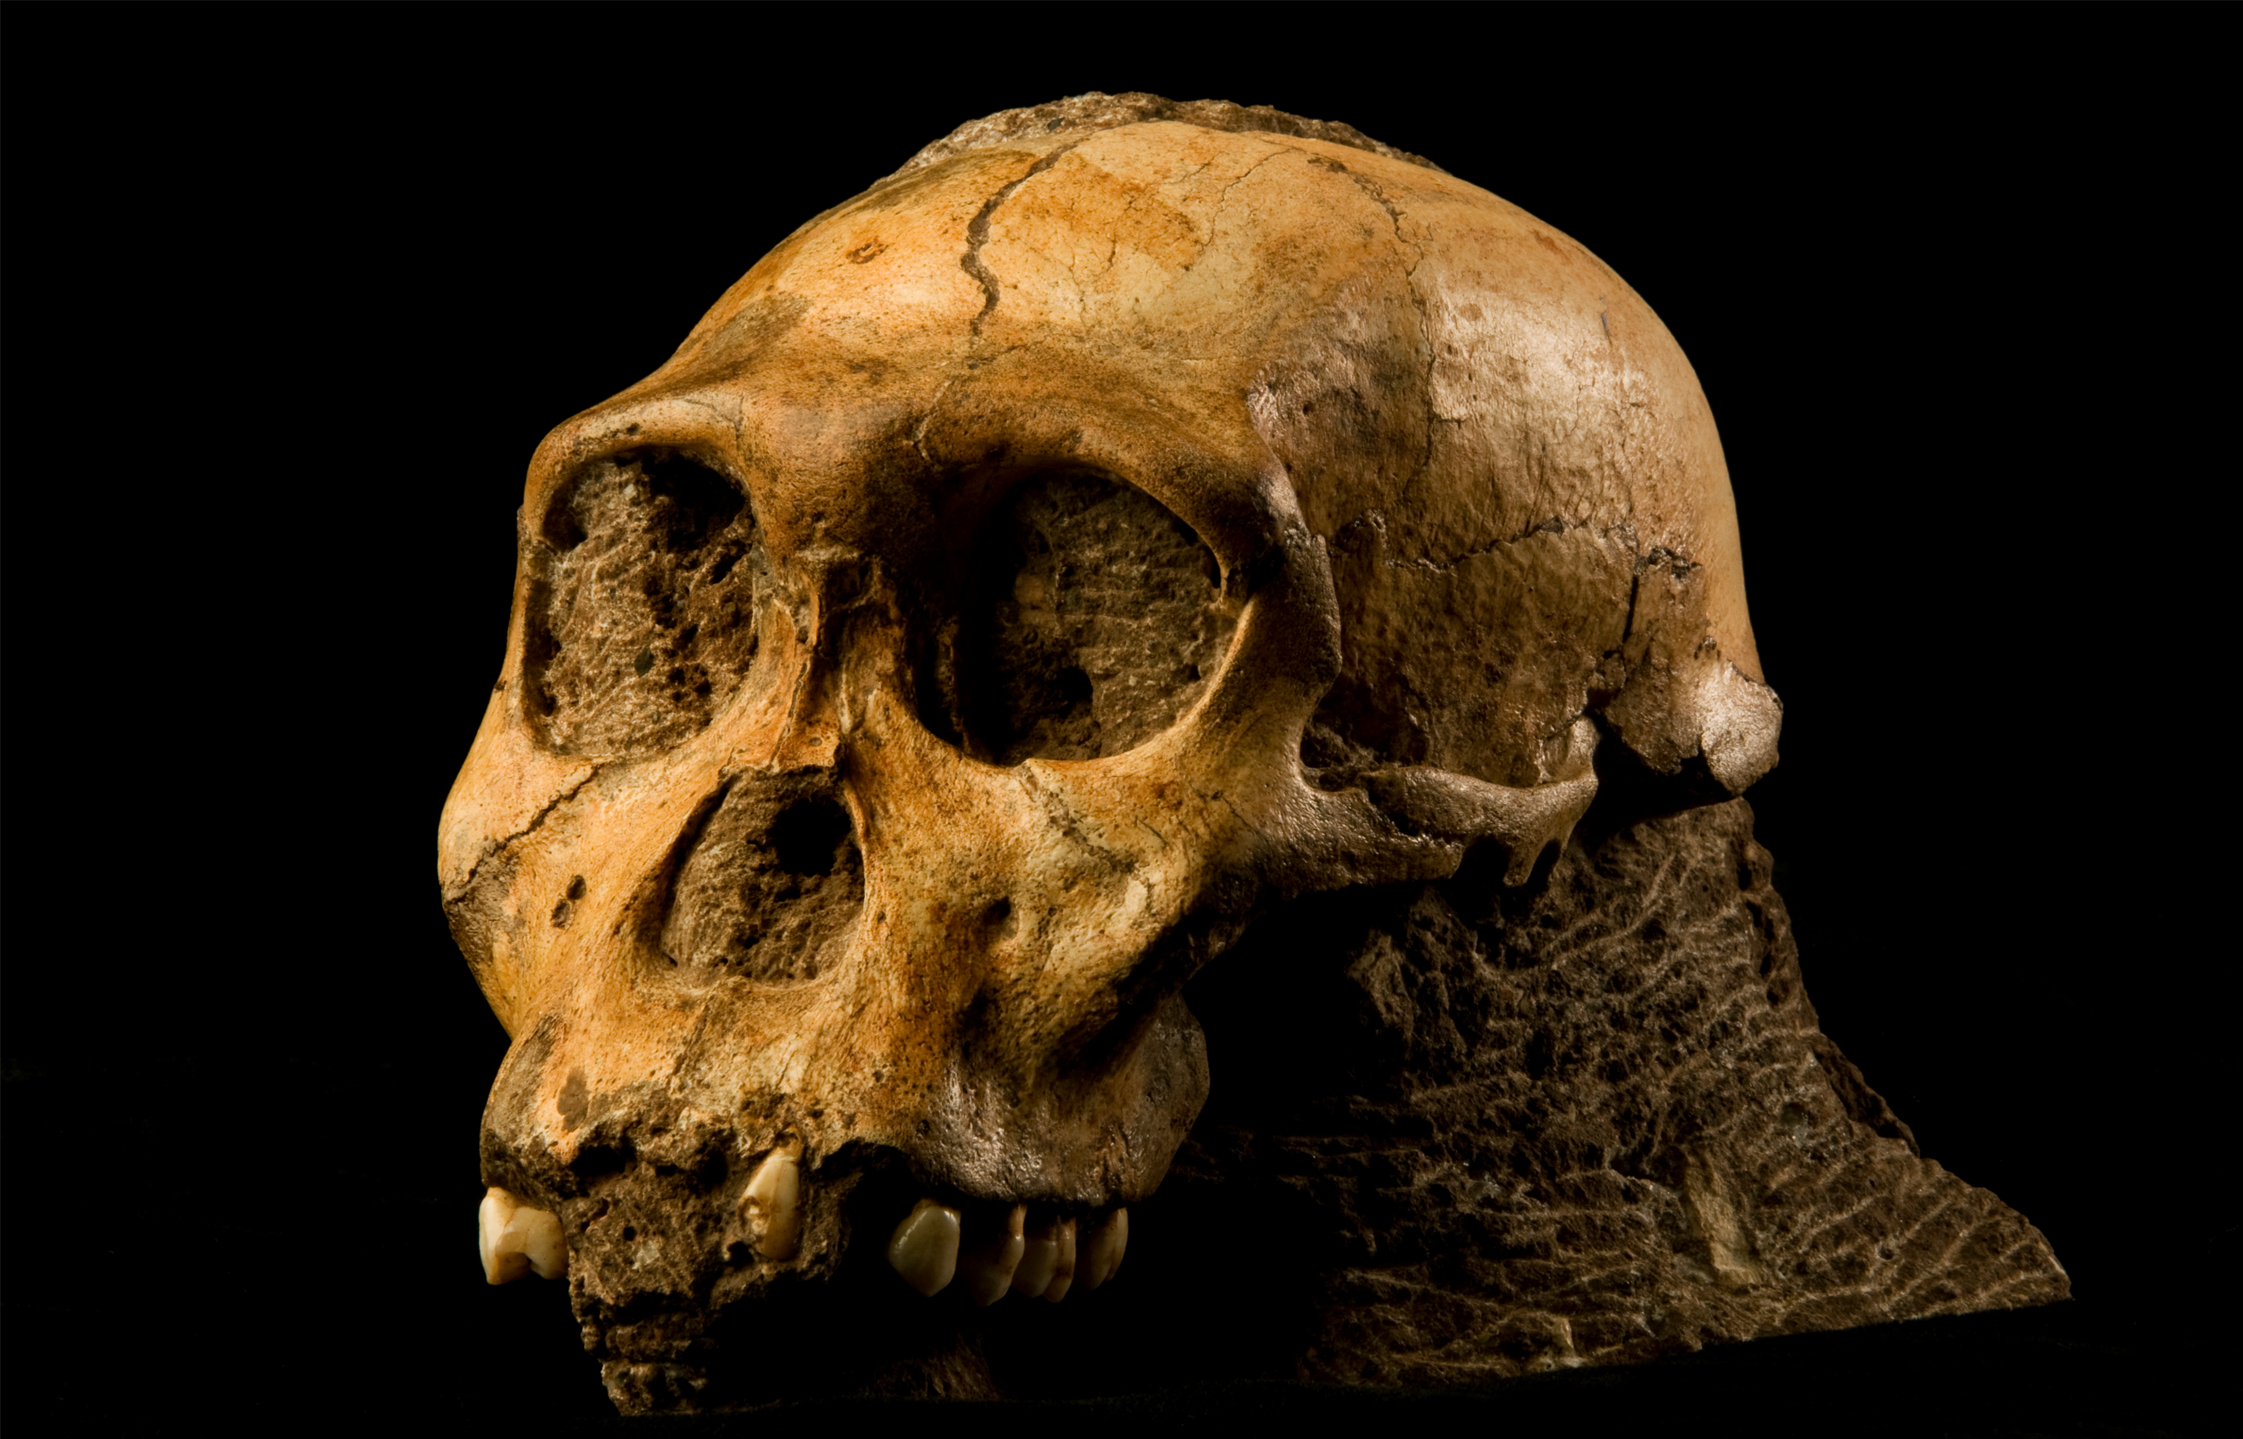 Early human ancestors had more variable diet